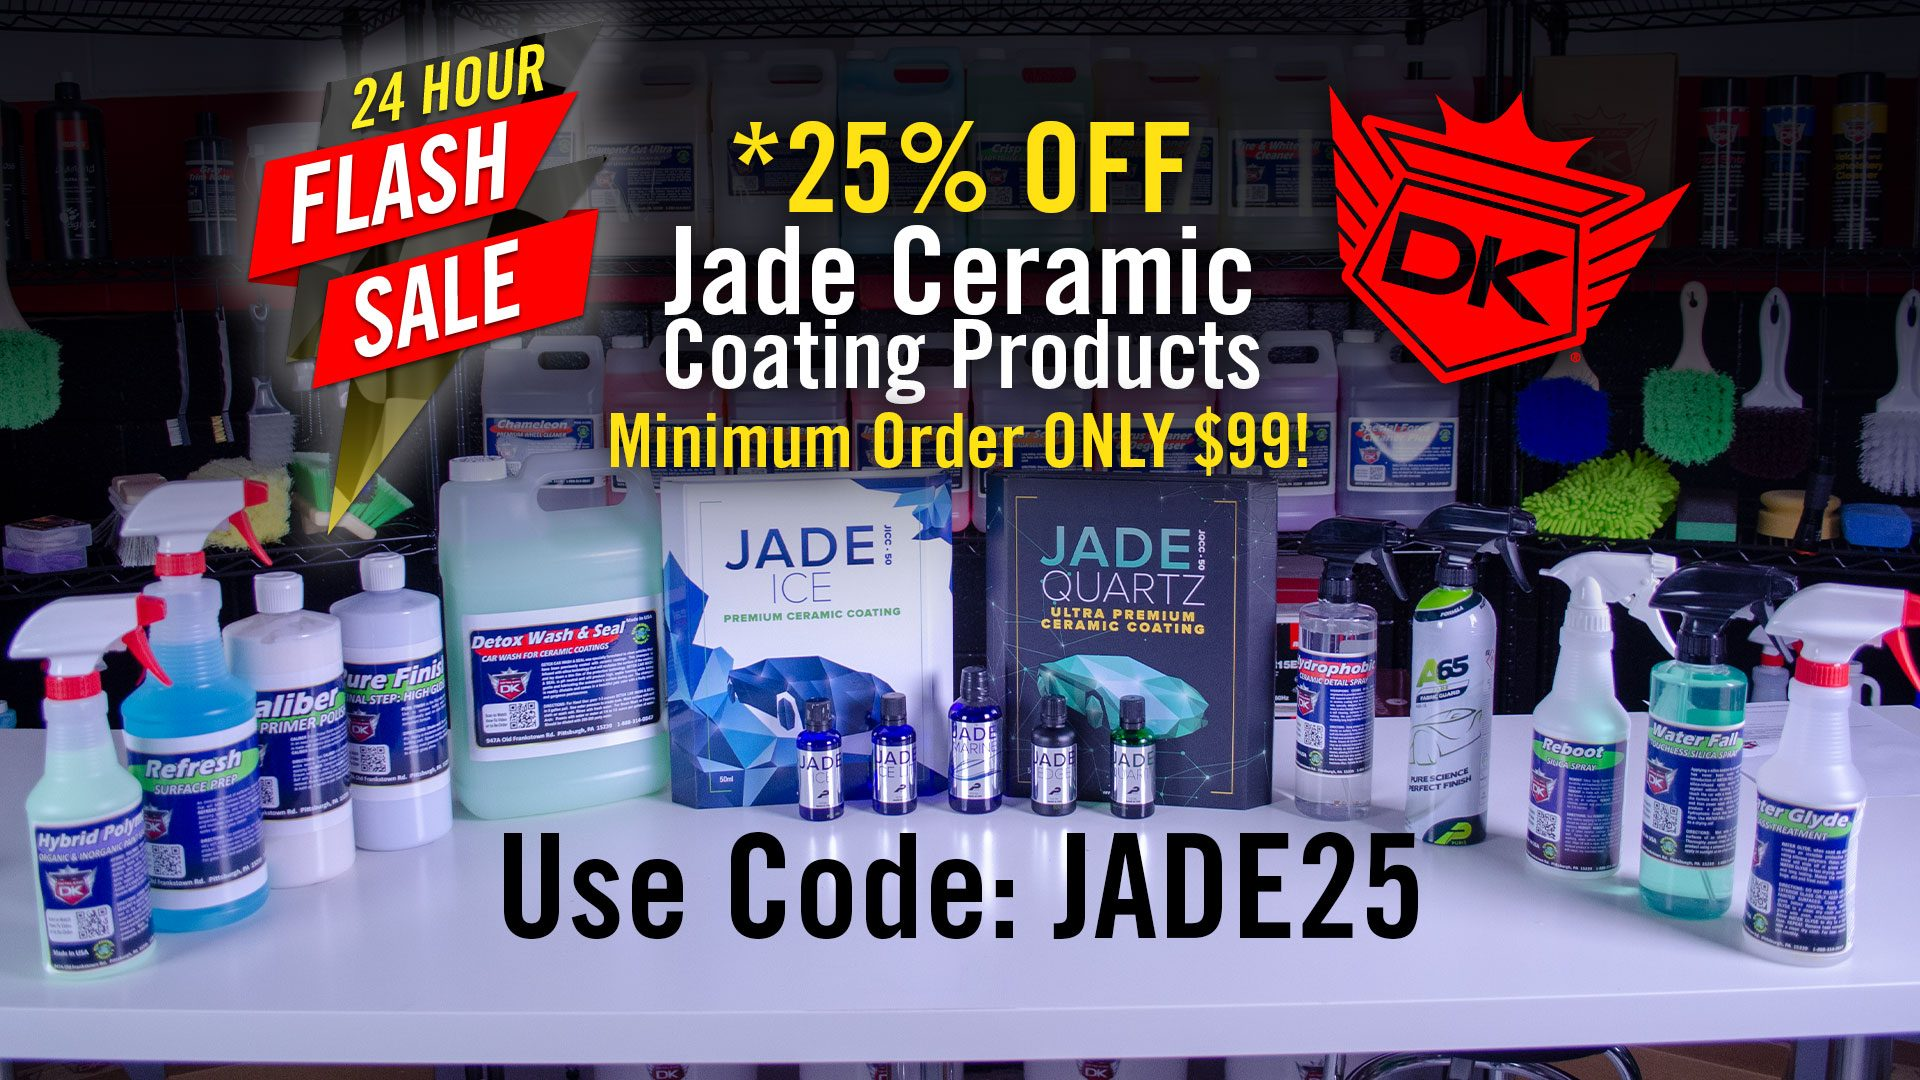 24 Hour Flash Sale! – *25% Off Jade Ceramic Coating Products! Min. Order ONLY $99! – Detail King